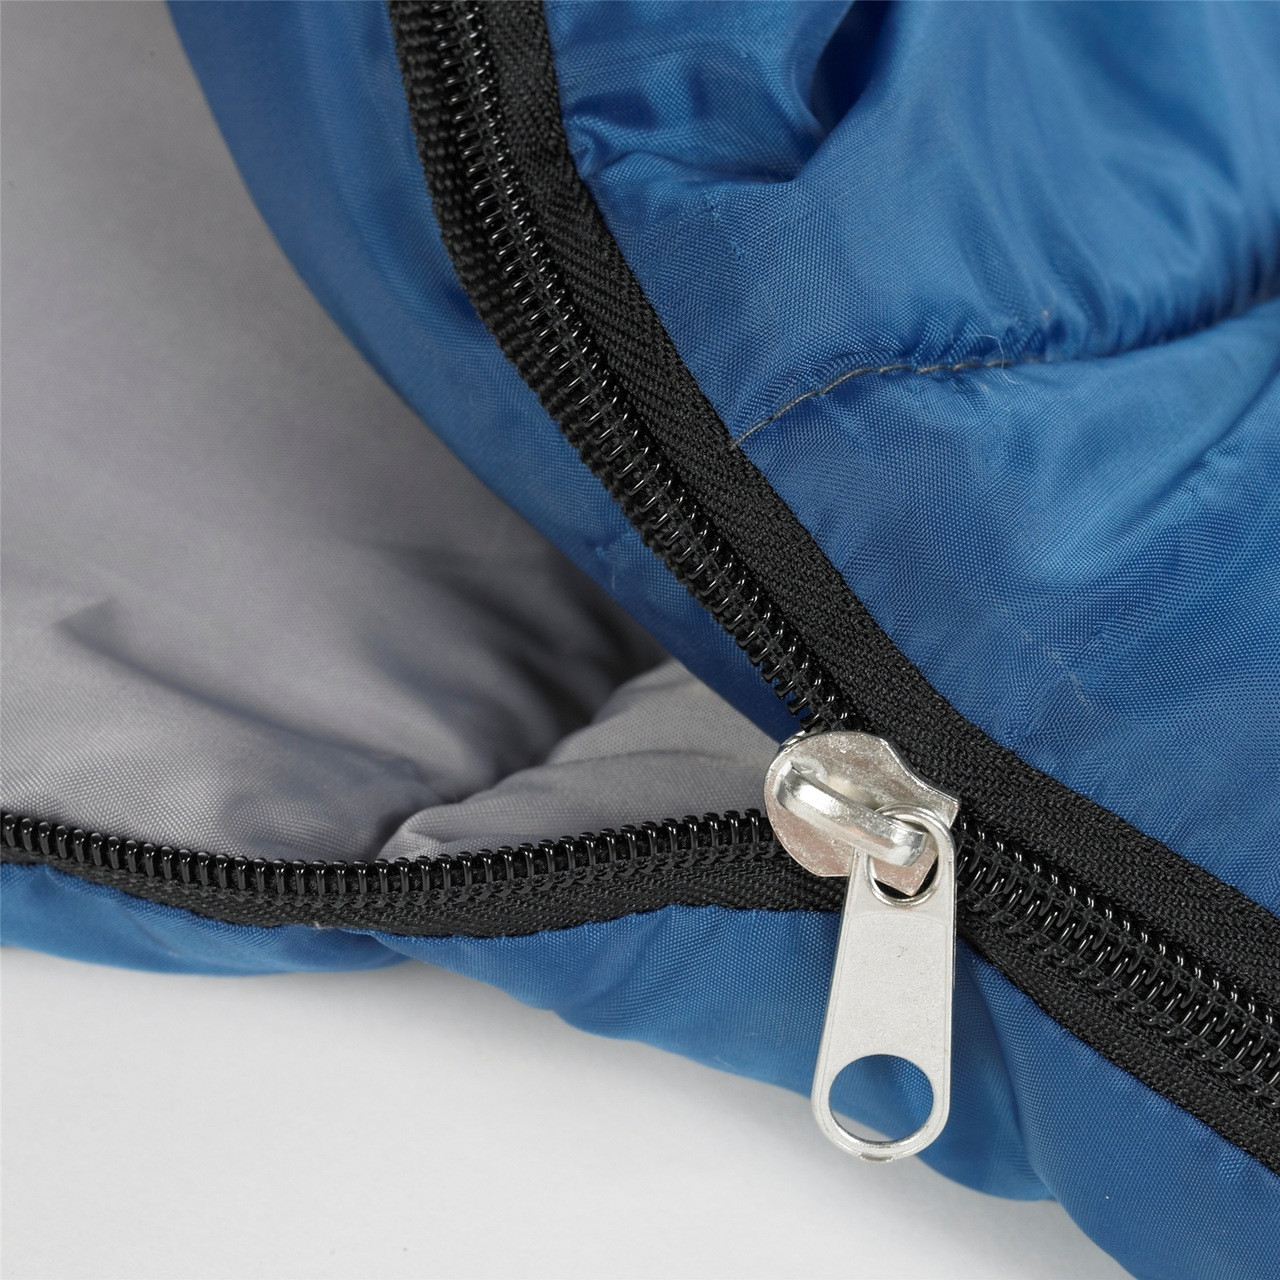 Close up view of the zipper partially unzipped on the Wenzel Sunward 30 degree sleeping bag